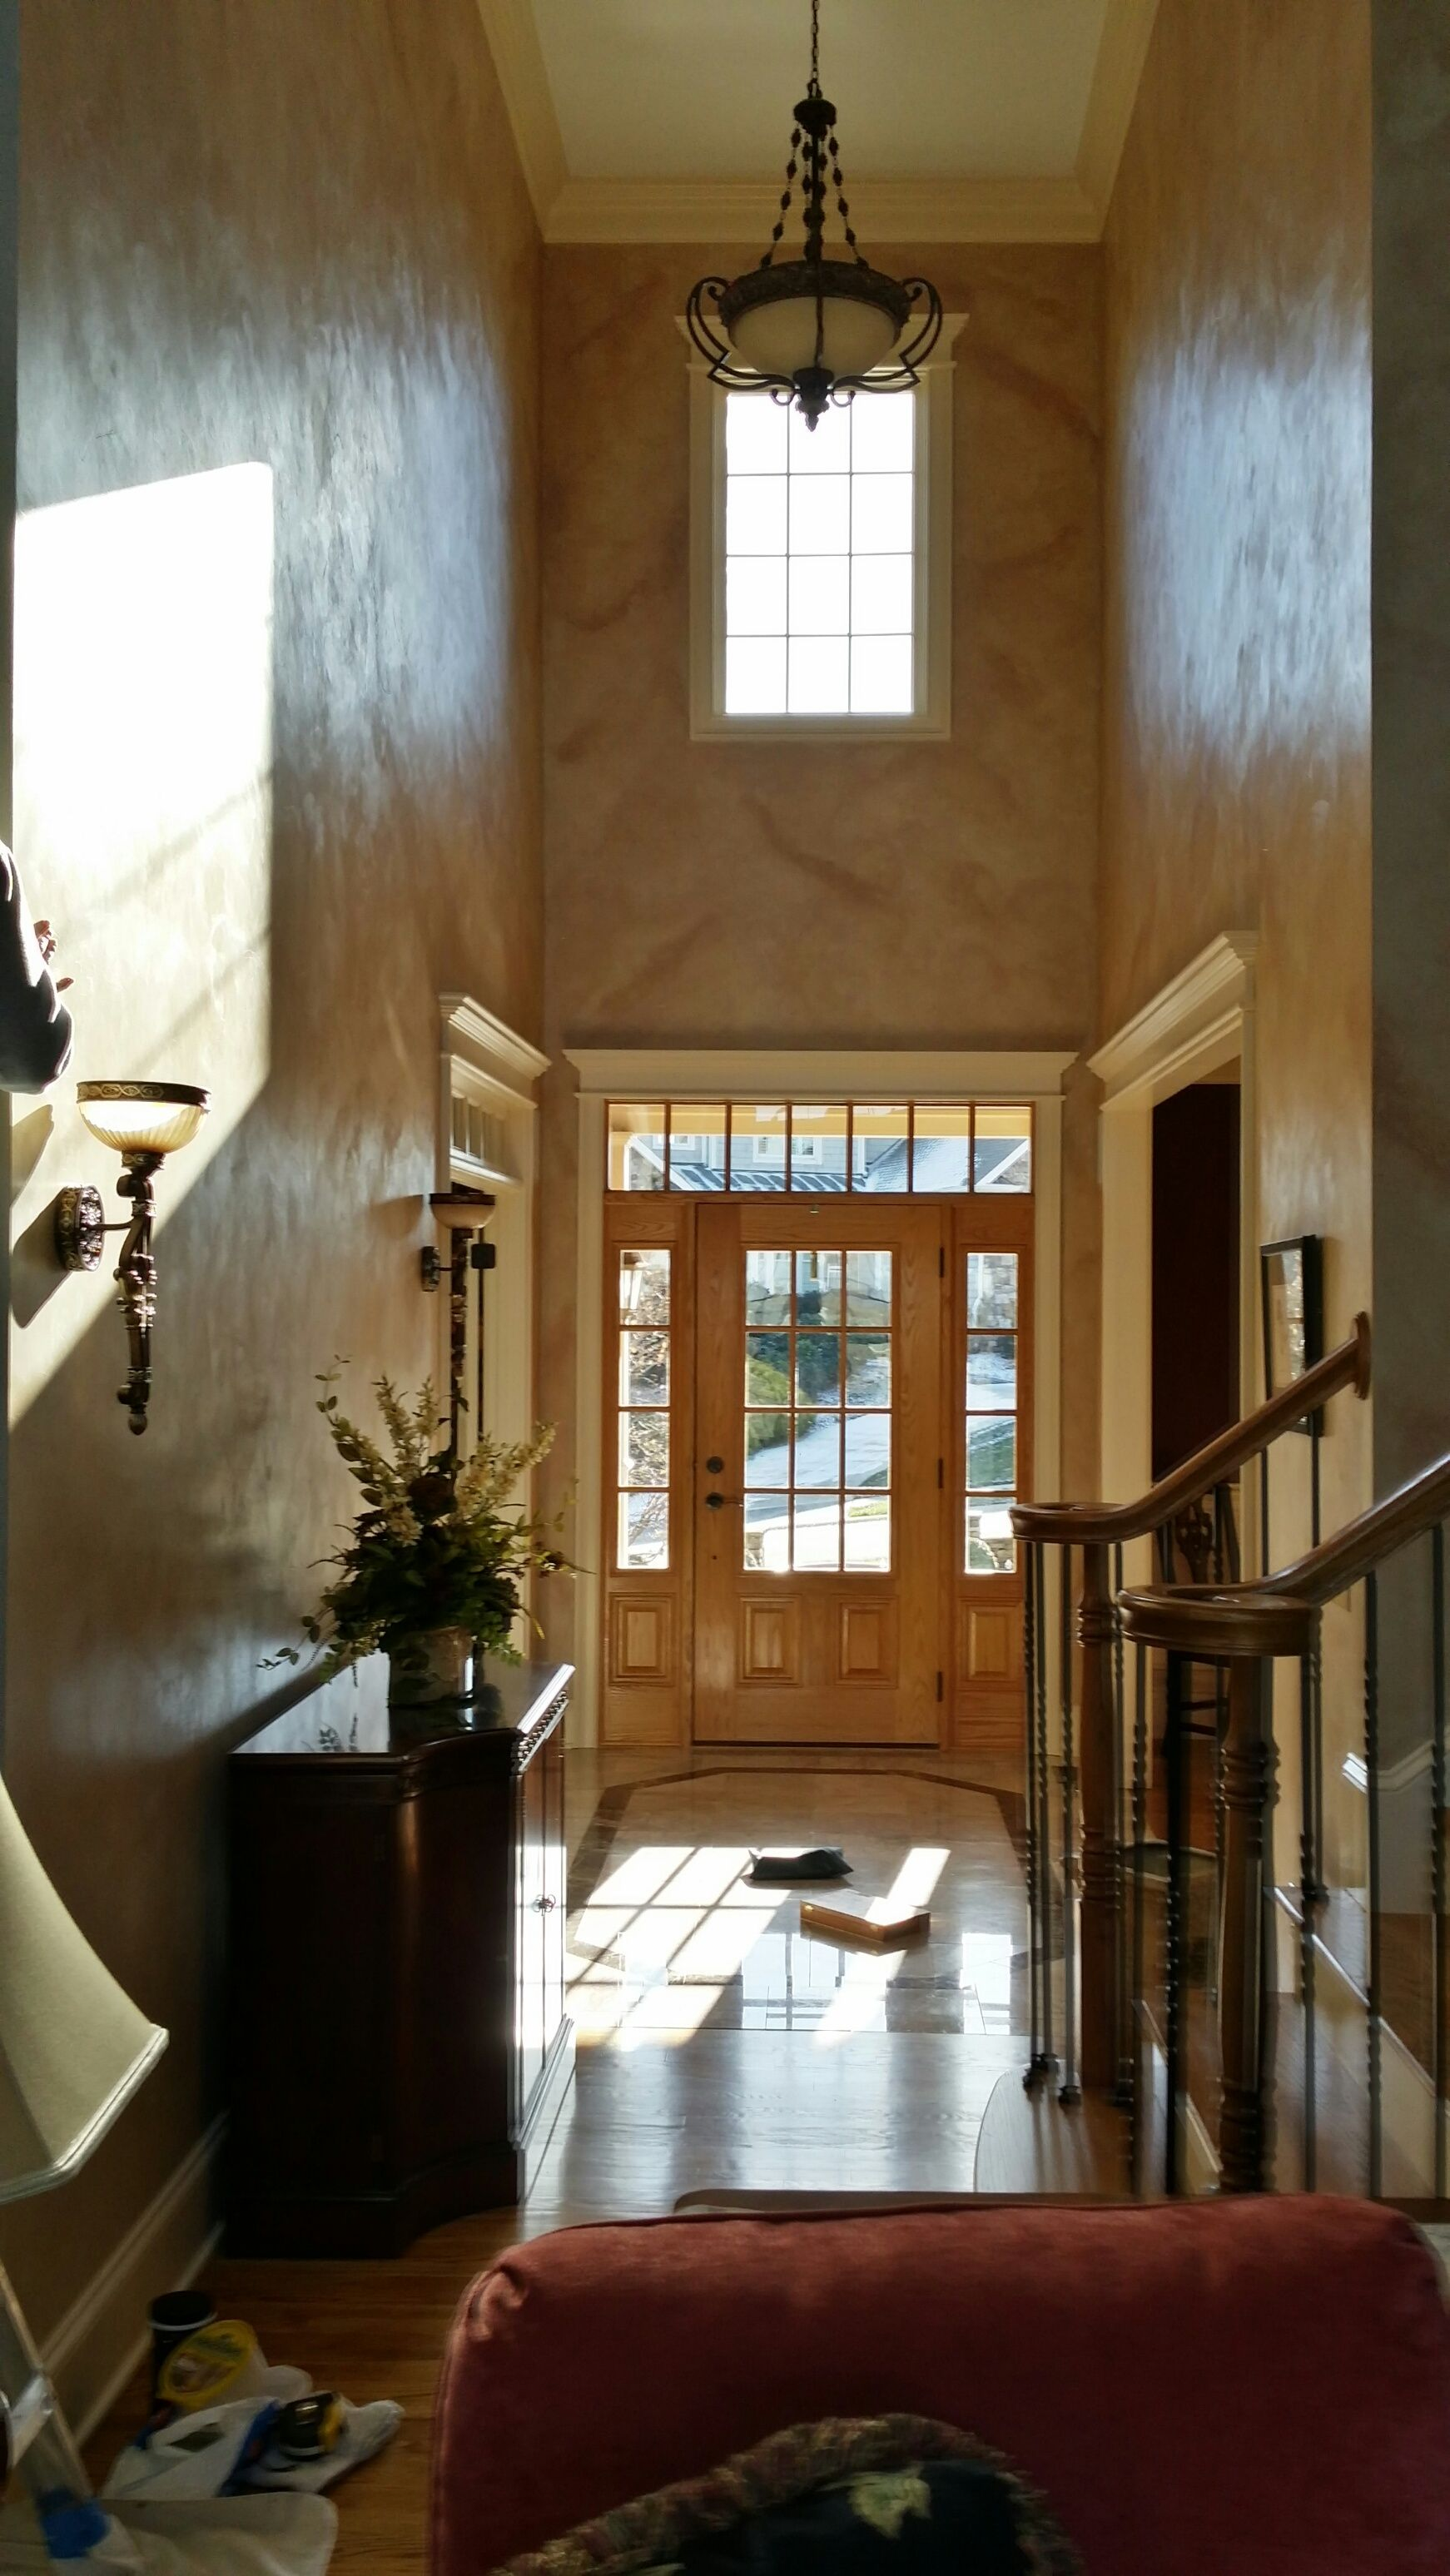 Sherwin Williams Venetian Plaster Faux Finish With Glaze In A Grand Entryway Http